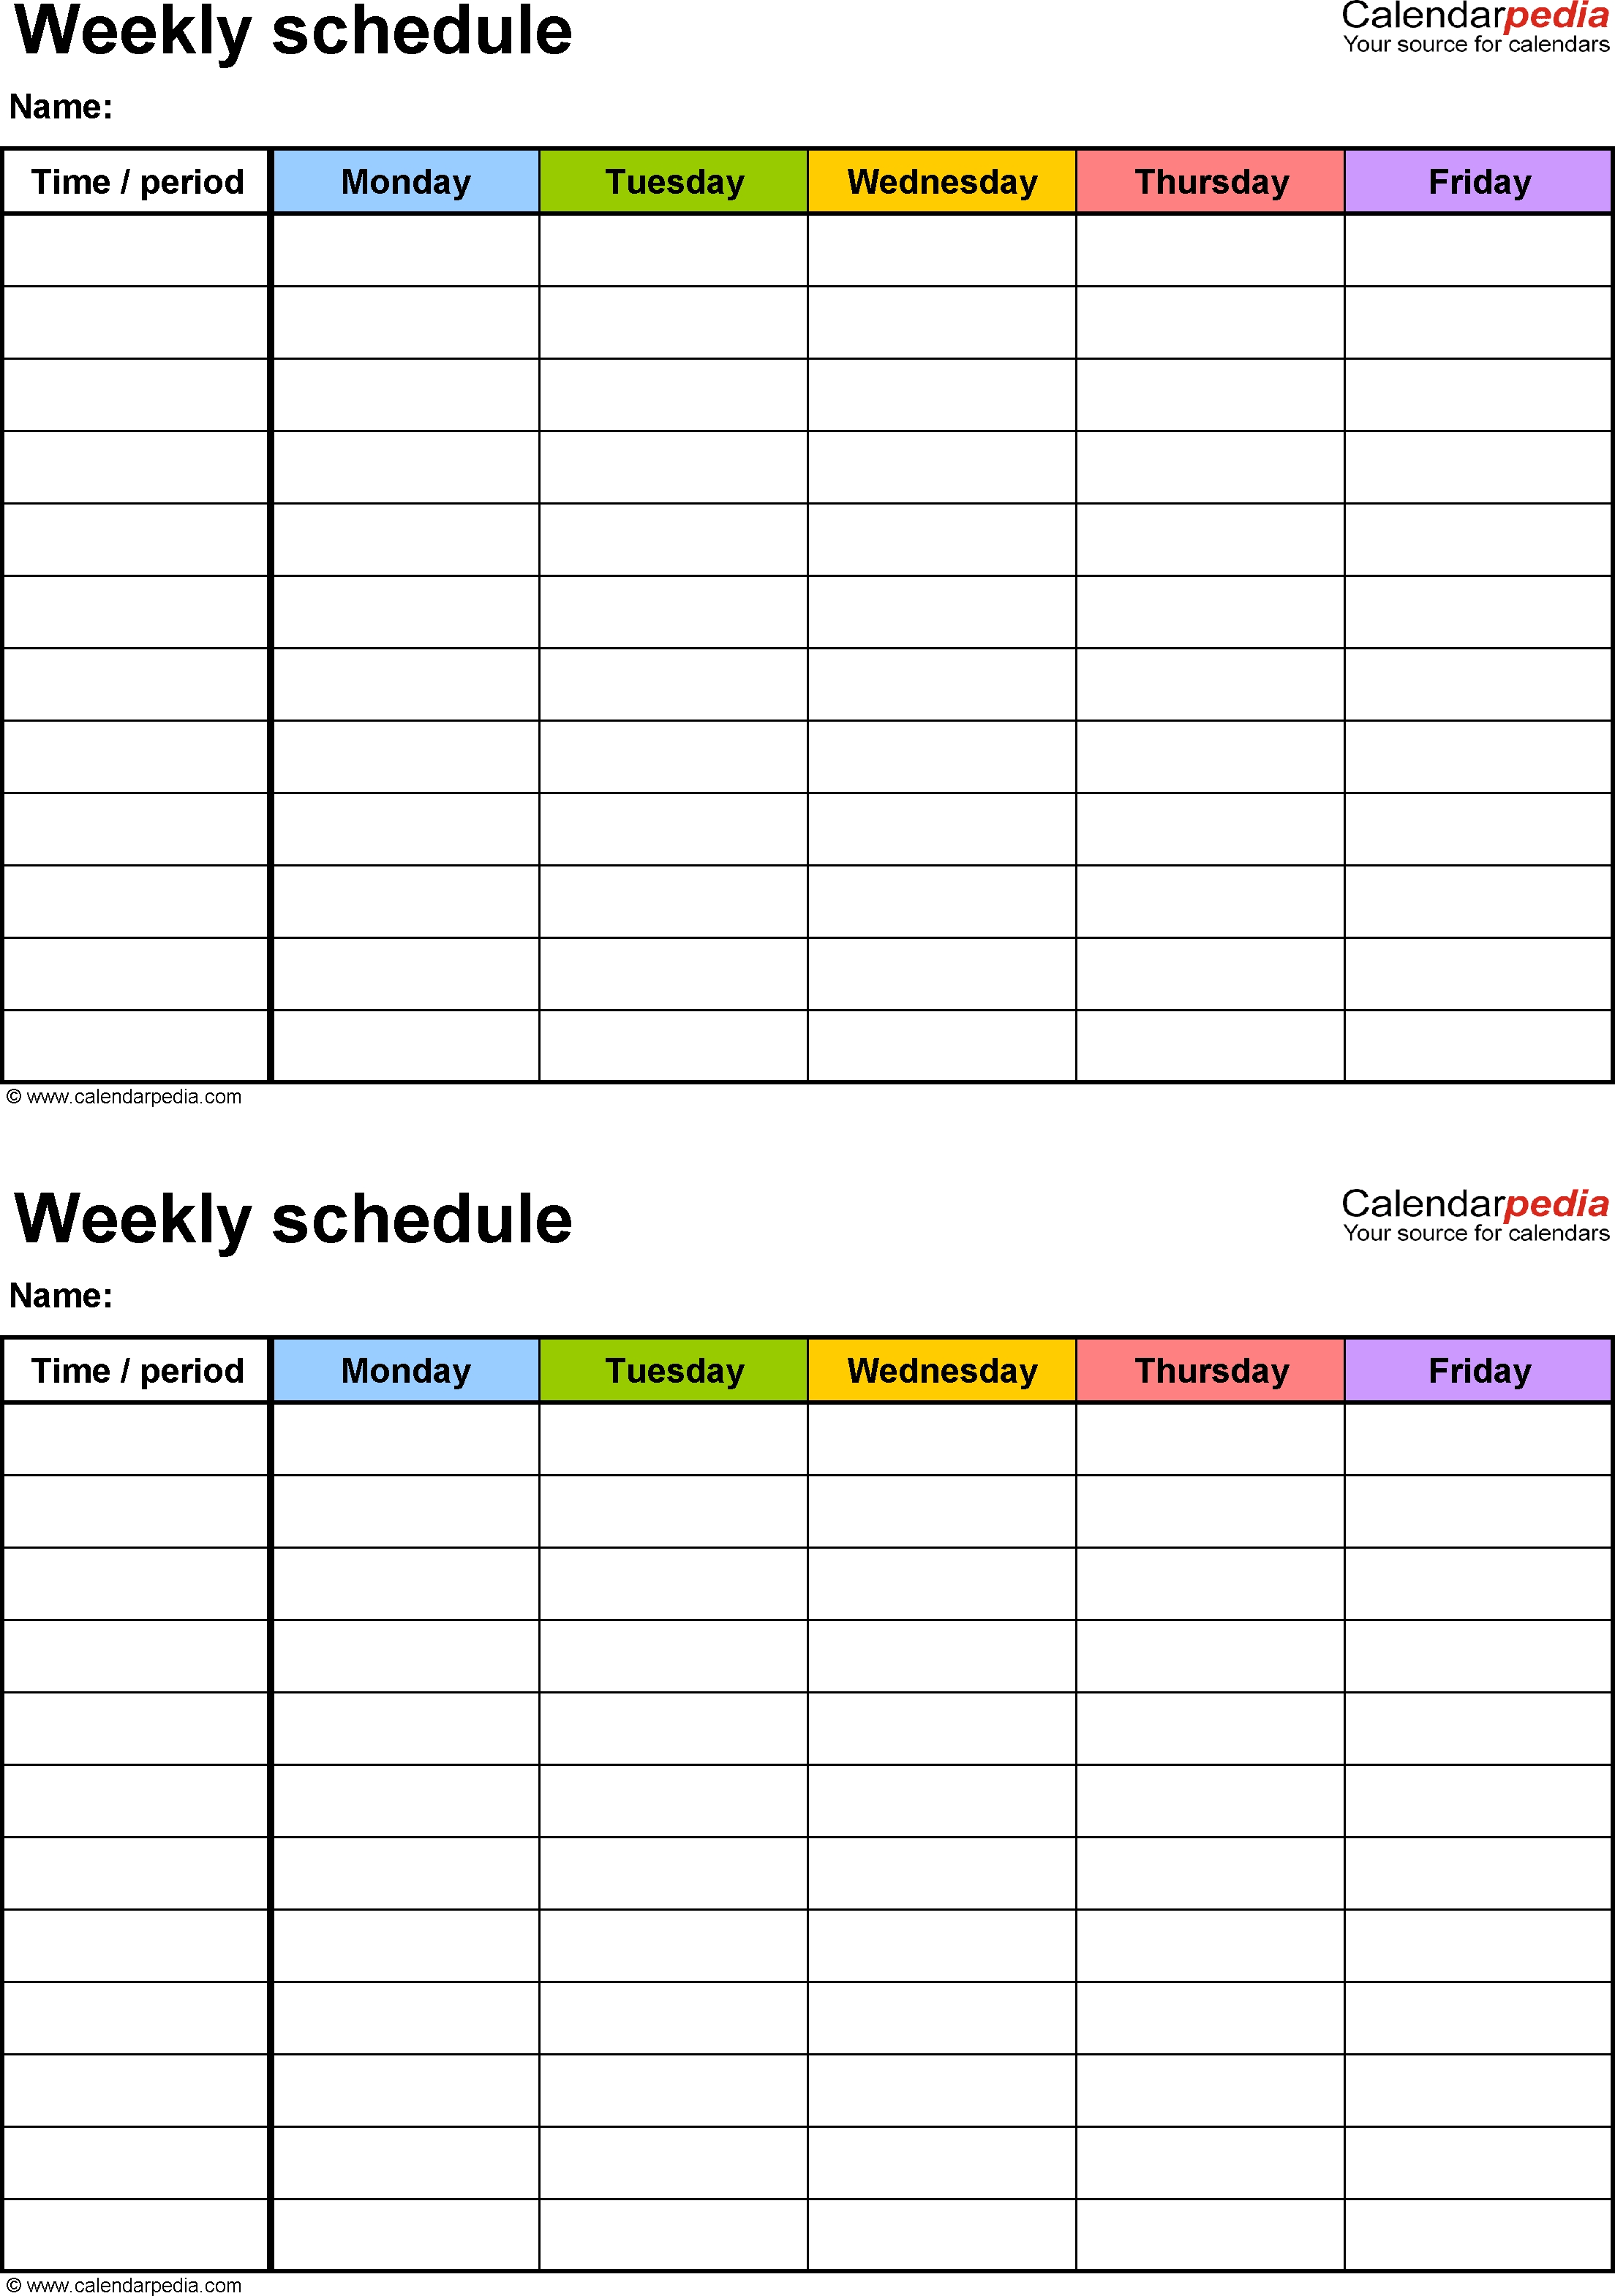 Free Weekly Schedule Templates For Word - 18 Templates  Printable Blank Weekly Employee Schedule